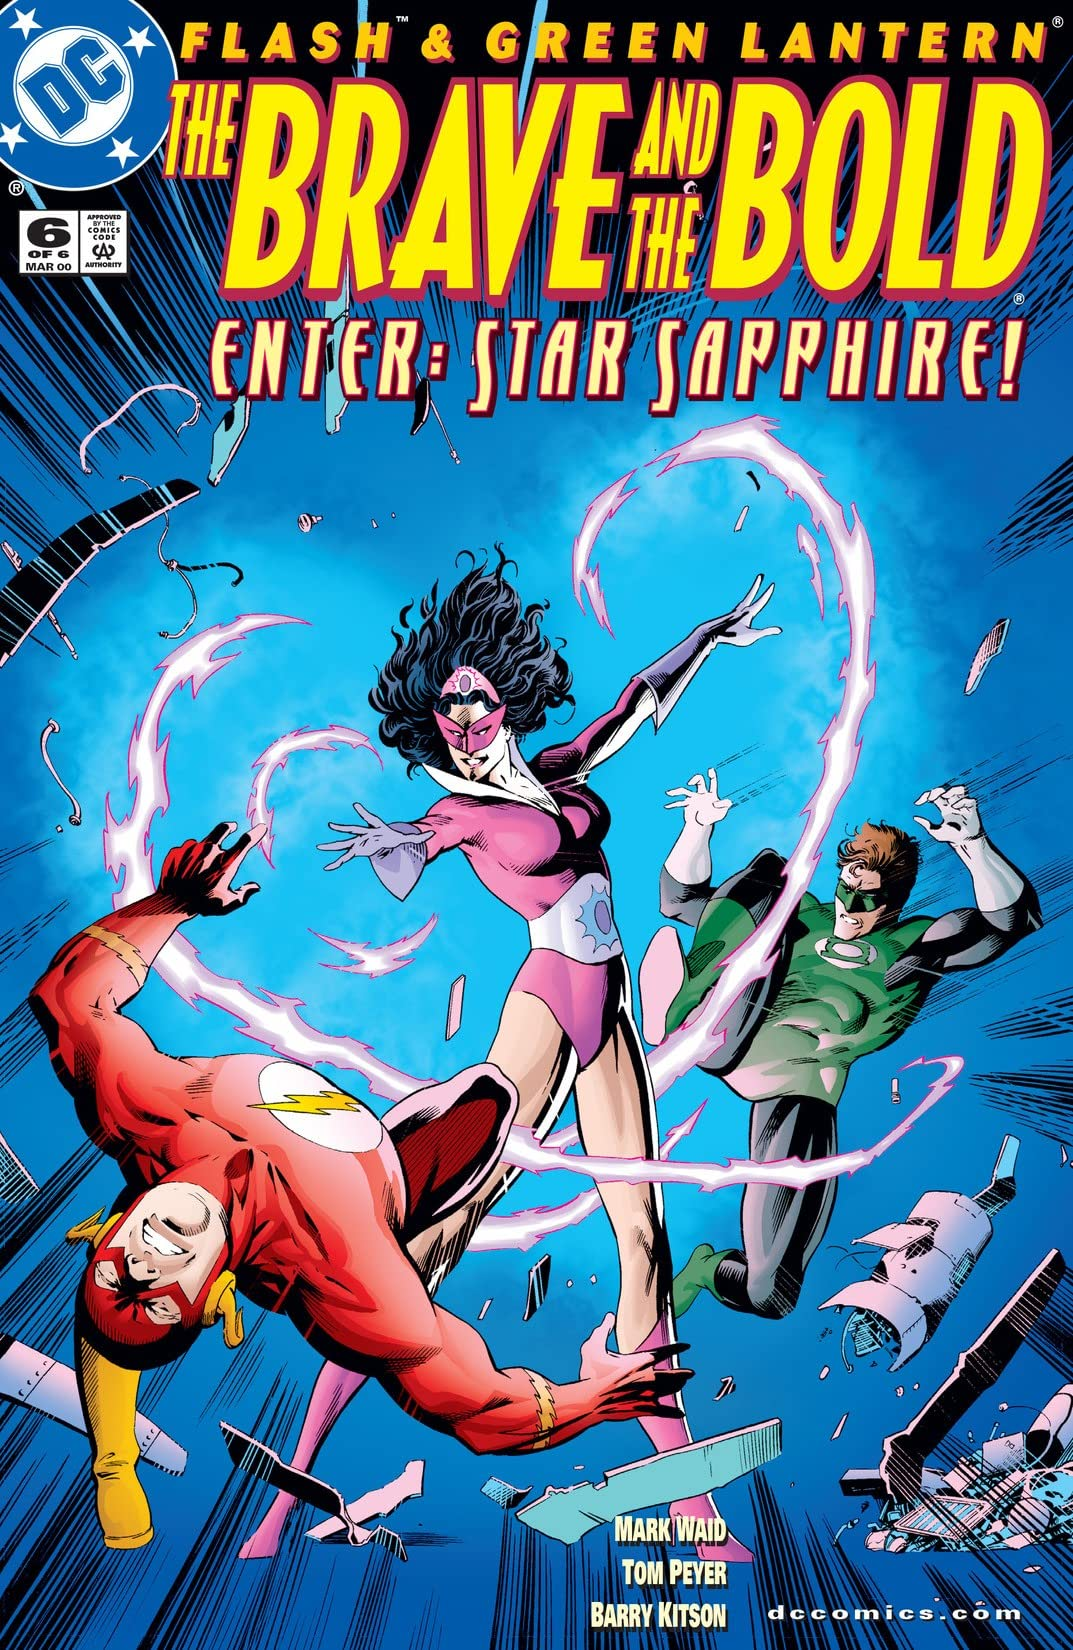 Flash & Green Lantern: The Brave & The Bold (1999-2000) #6